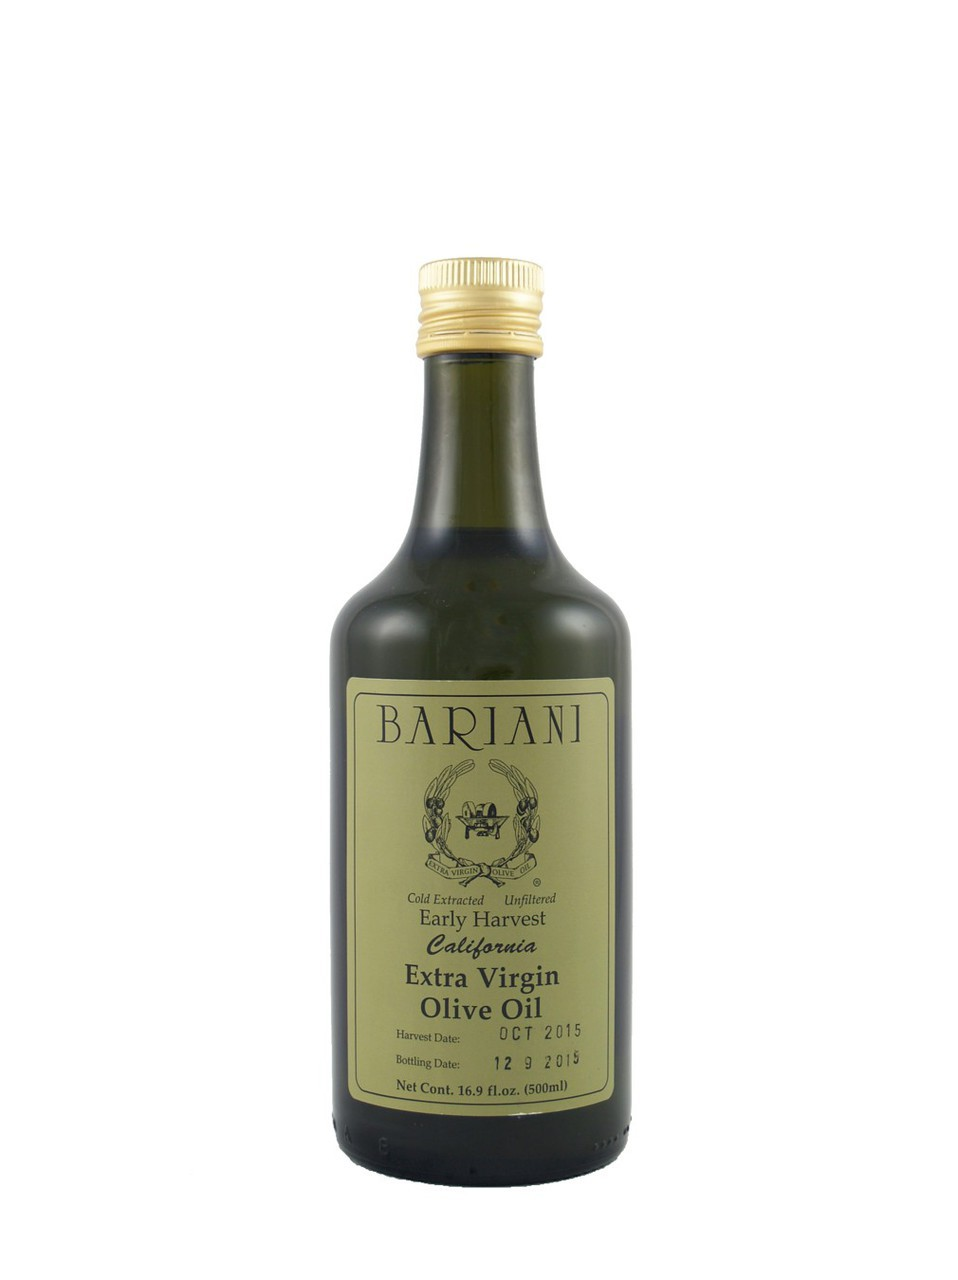 Bariani Early Harvest California Extra Virgin Olive Oil 500ml 16.9 oz by